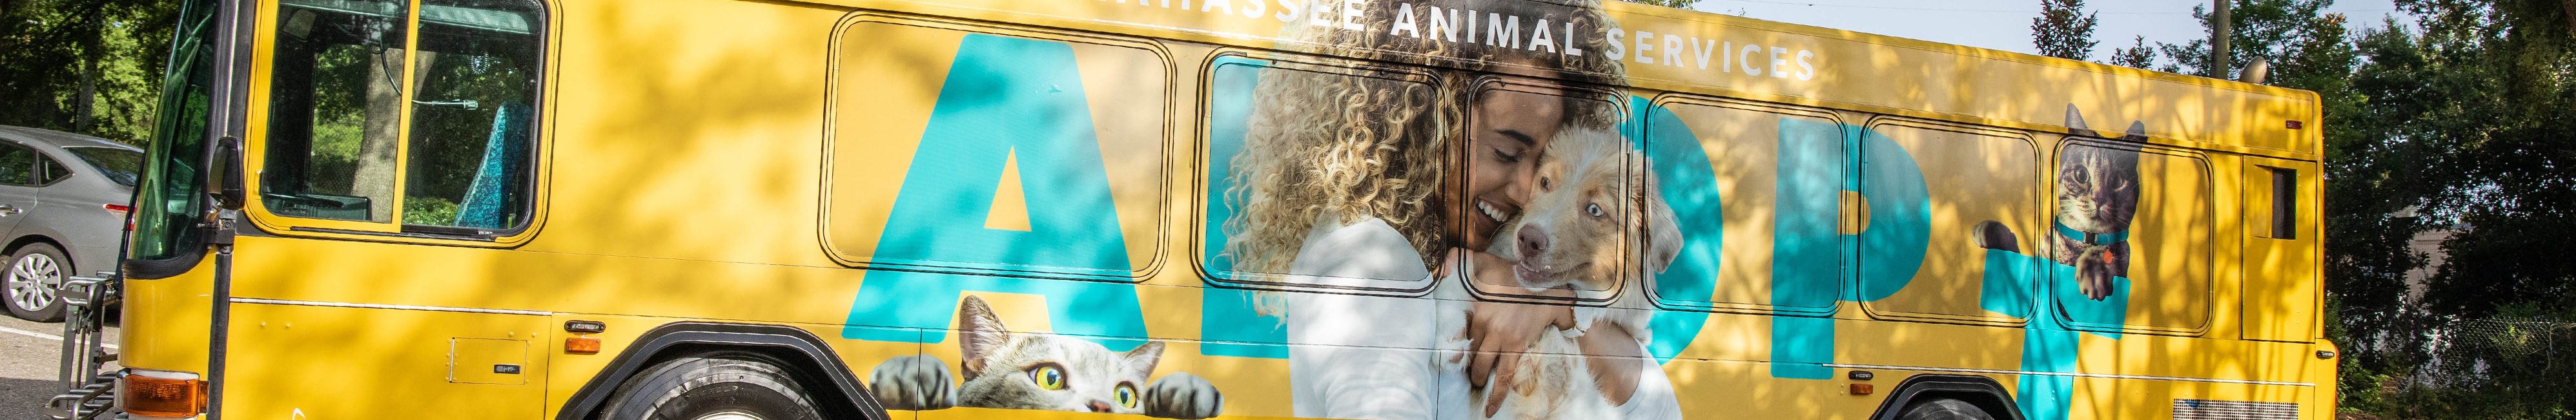 Animal Services | Animal Services